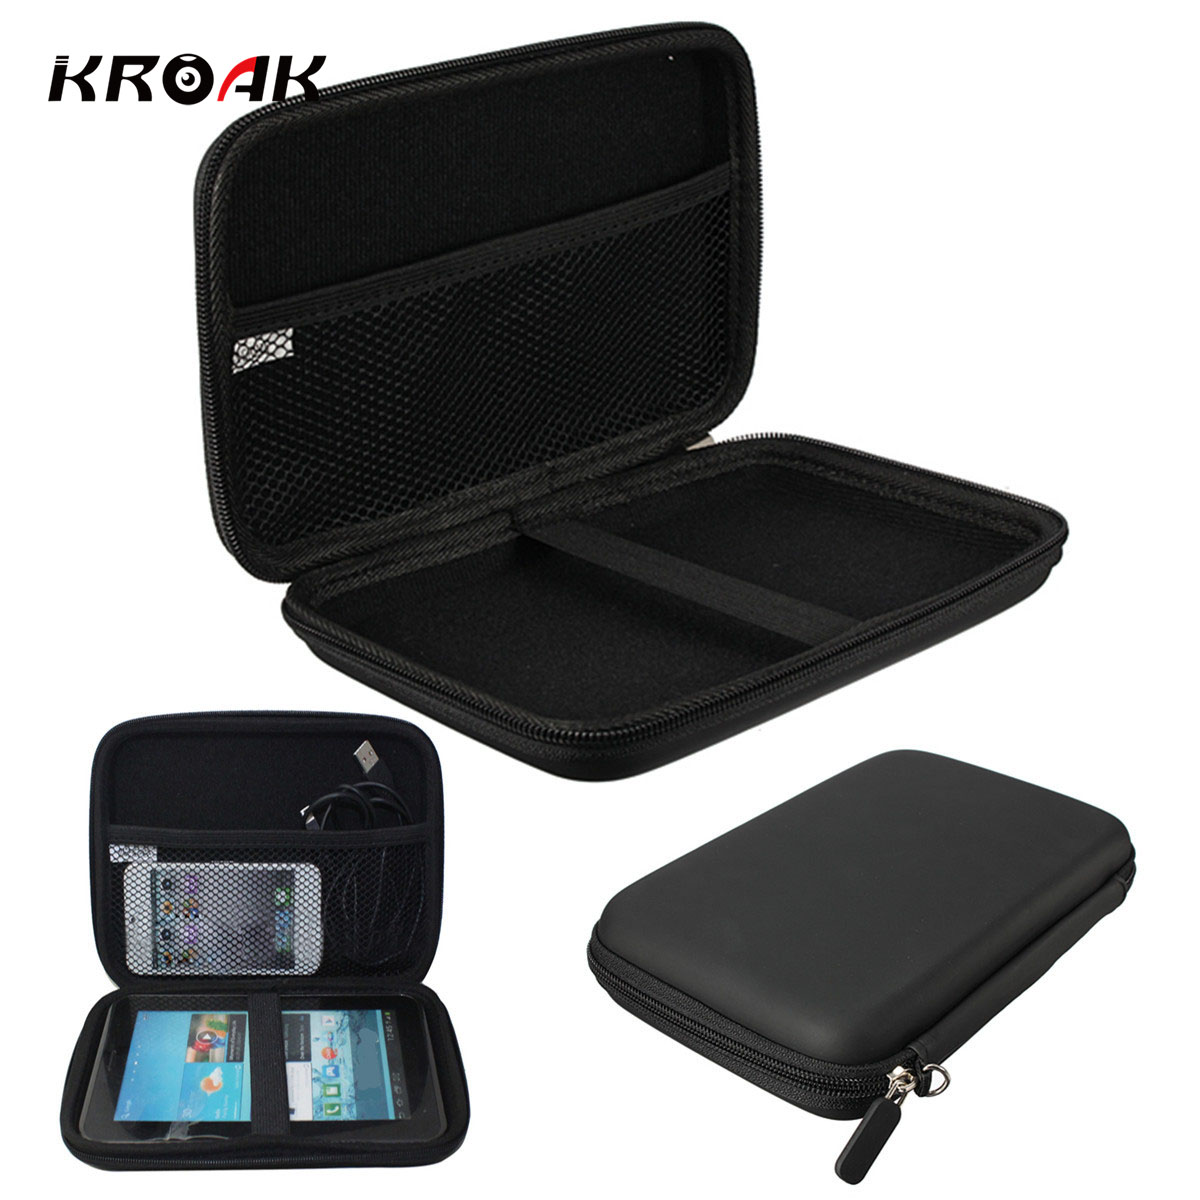 все цены на KRAOK Portable 7 inch GPS Navigation Storage Bag GPS Protection Cover Case PU EVA Hard Shell Box Carry Case Cover for TomTom онлайн